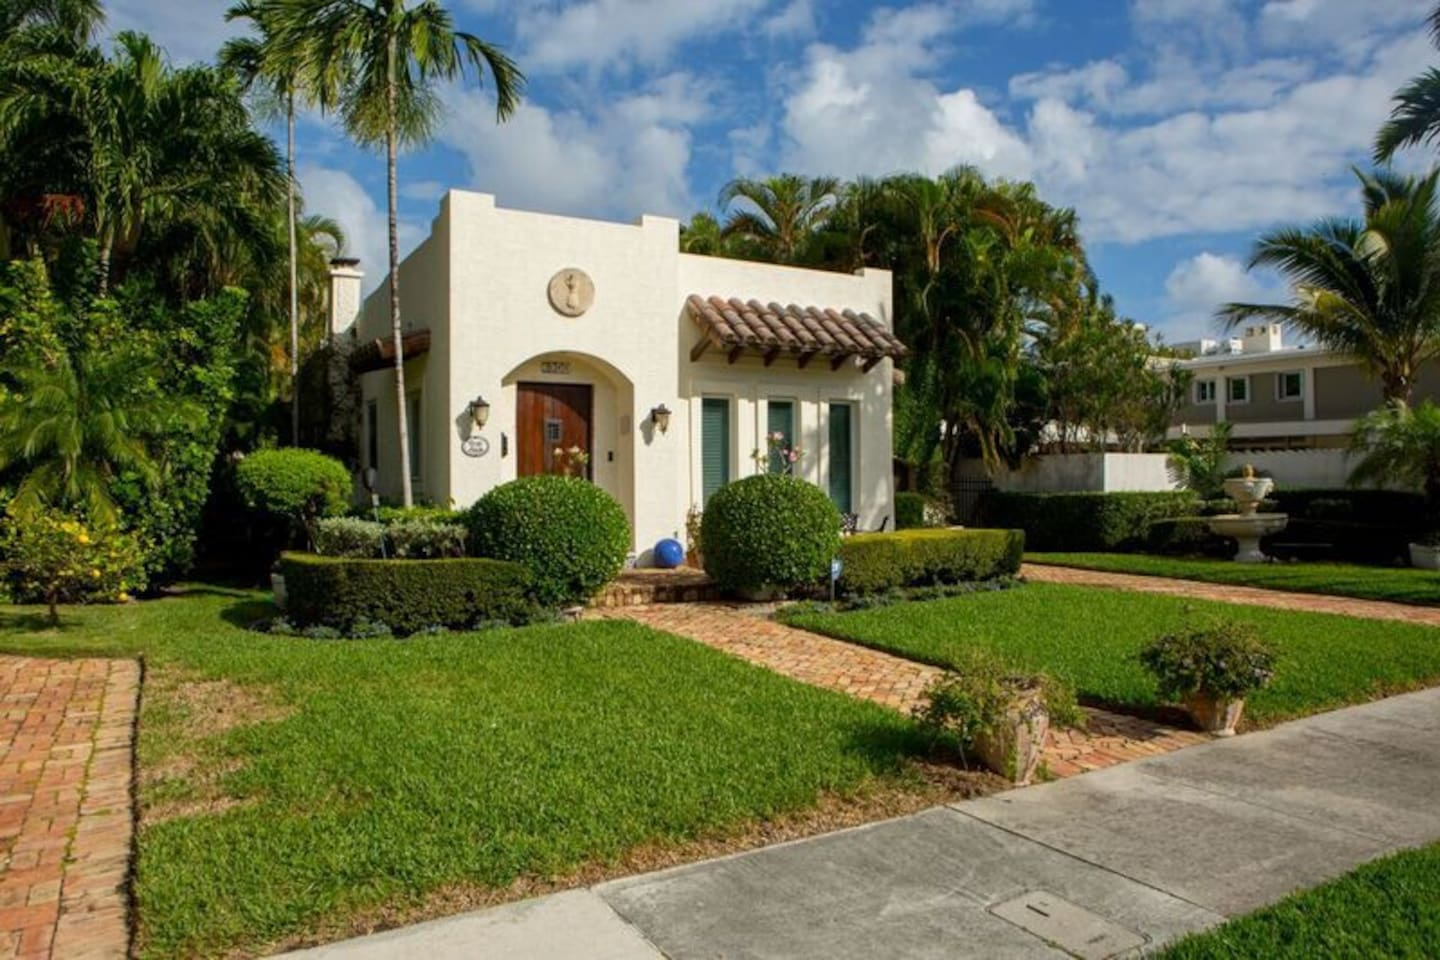 Completely renovated home built in 1920's Mediterranean Revival/Spanish Eclectic style.